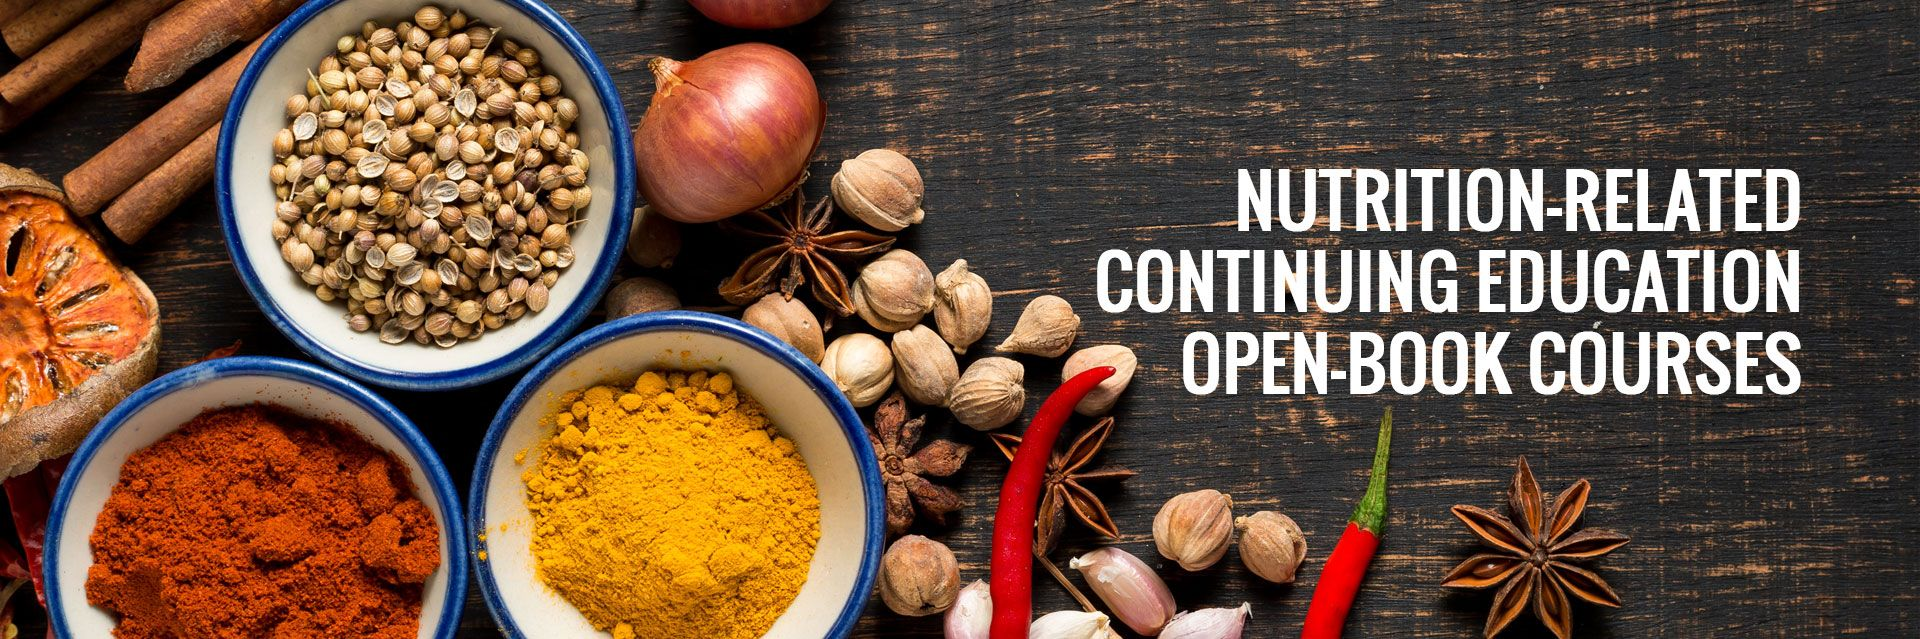 Pin by Andrea Mitola on Nutrition Continuing Ed (With